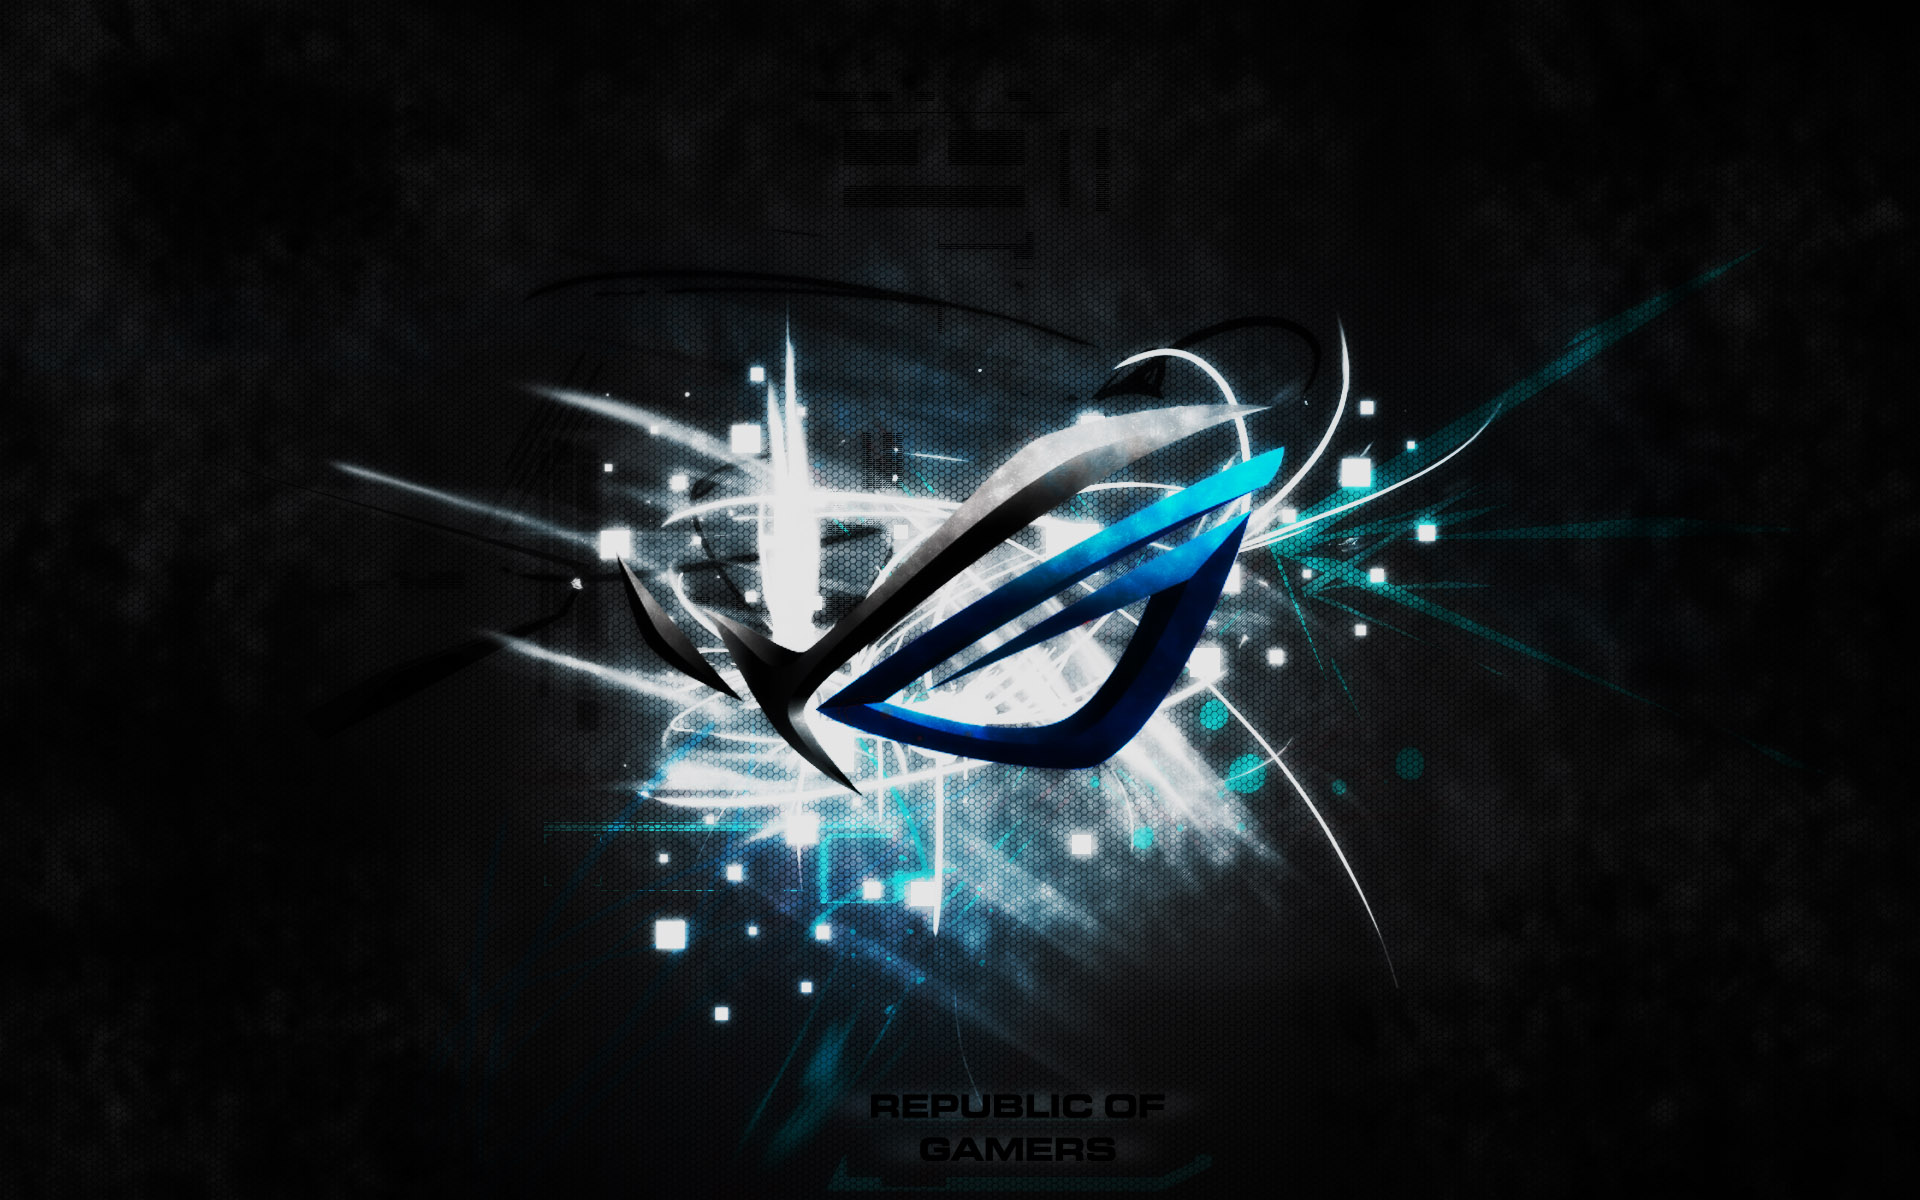 Untitled Rog Wallpaper Contest Entry 2 By Azurewrath87 D4ncdkf Republic Of Gamers 77291 Hd Wallpaper Backgrounds Download